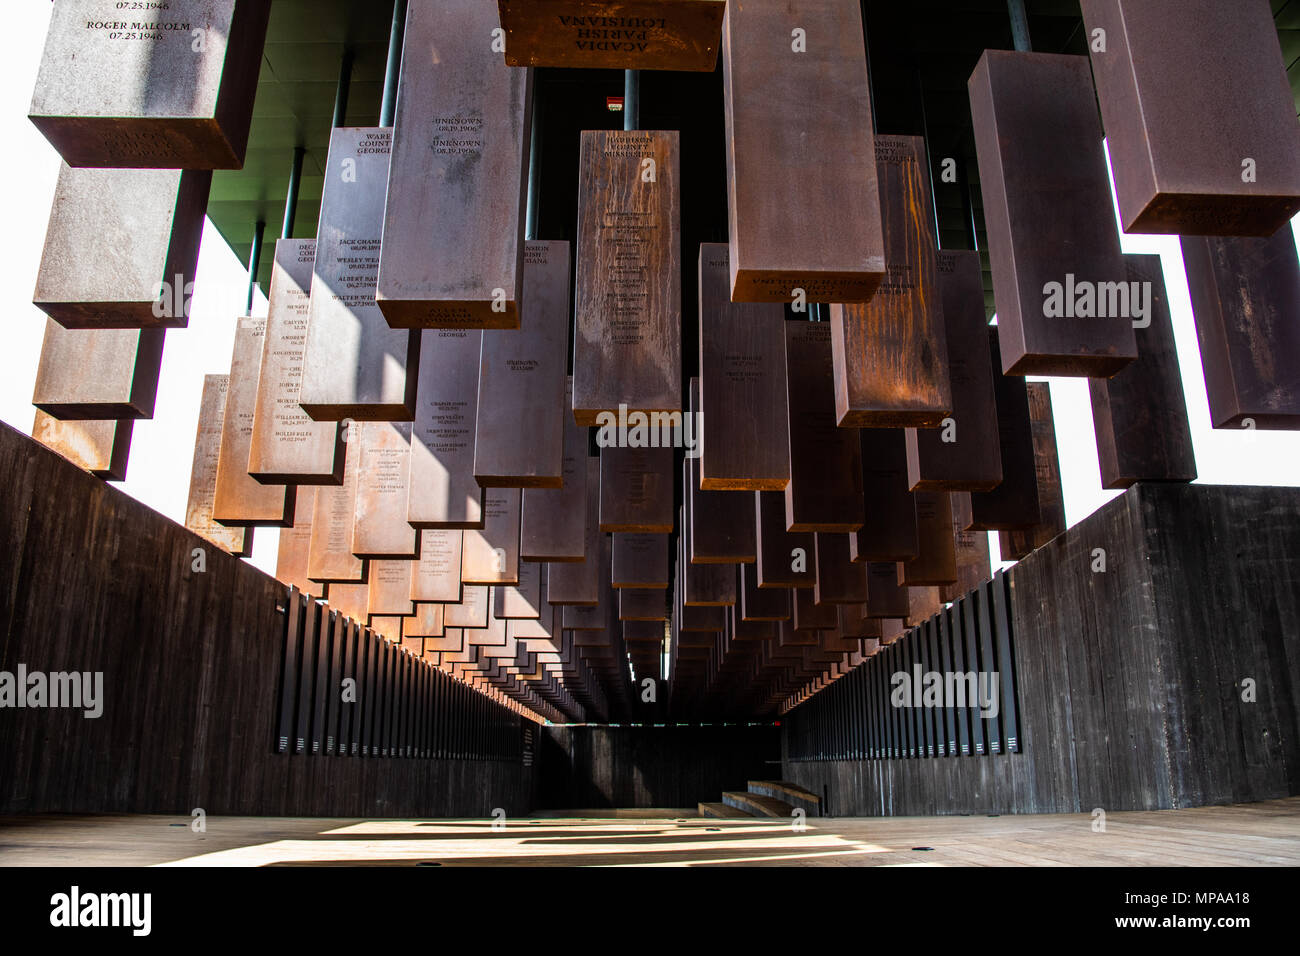 The National Memorial for Peace and Justice or National Lynching Memorial, Montgomery, Alabama, USA - Stock Image